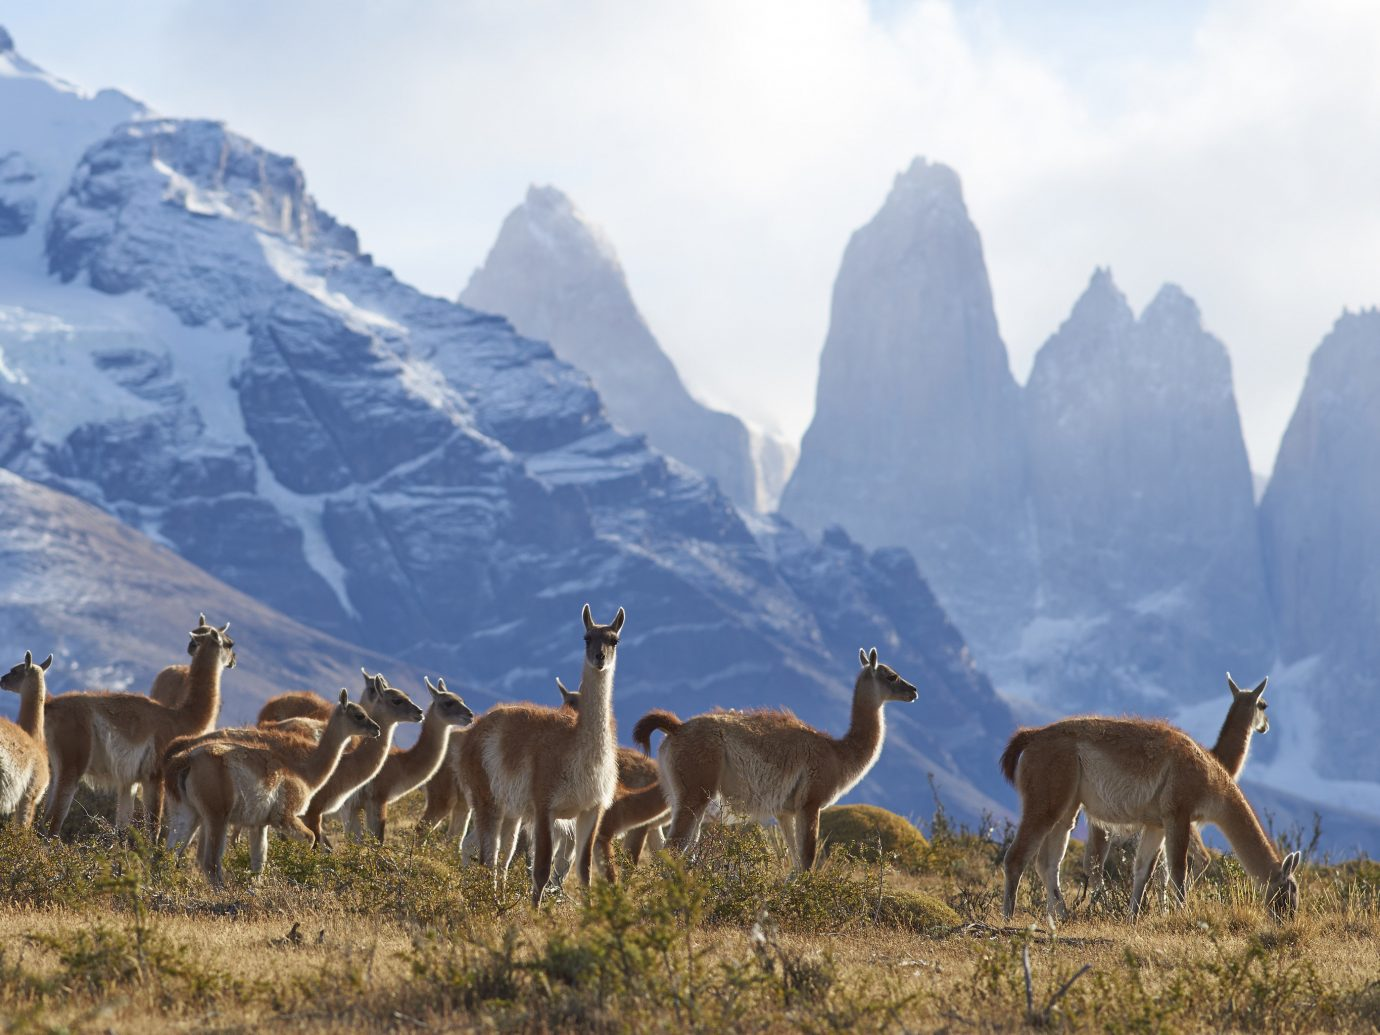 Jetsetter Guides Packing Tips Travel Tips Trip Ideas grass mountain sky outdoor field ecosystem Wildlife fauna animal wilderness group guanaco mammal national park camel like mammal standing grassy grassland herd llama ecoregion mountain range pasture fell vicuña landscape hill hillside lush